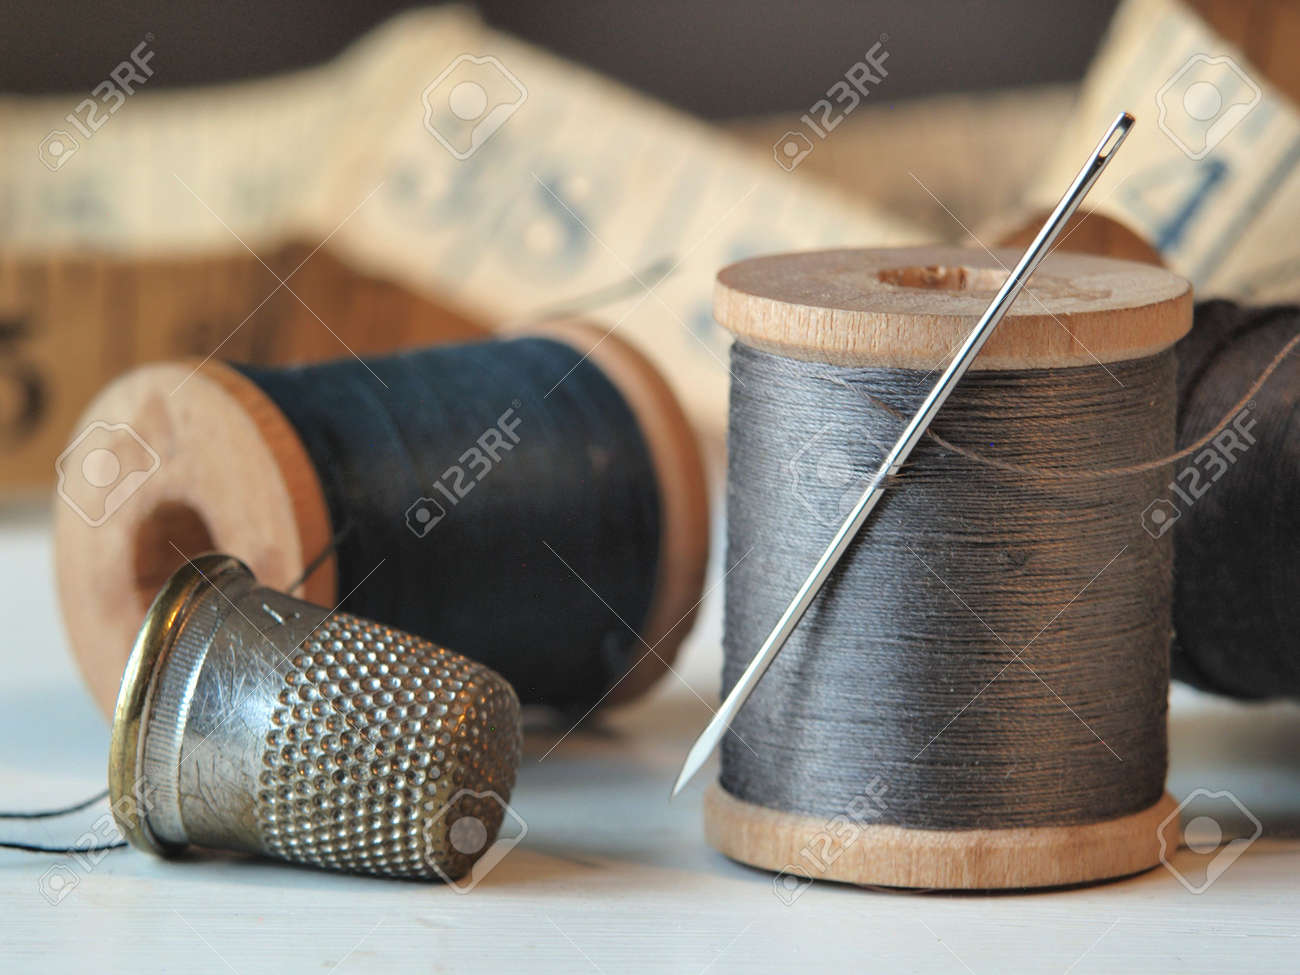 Close up of thread spools, needle, and thimble with a tape measure in the background. Stock Photo - 8208466